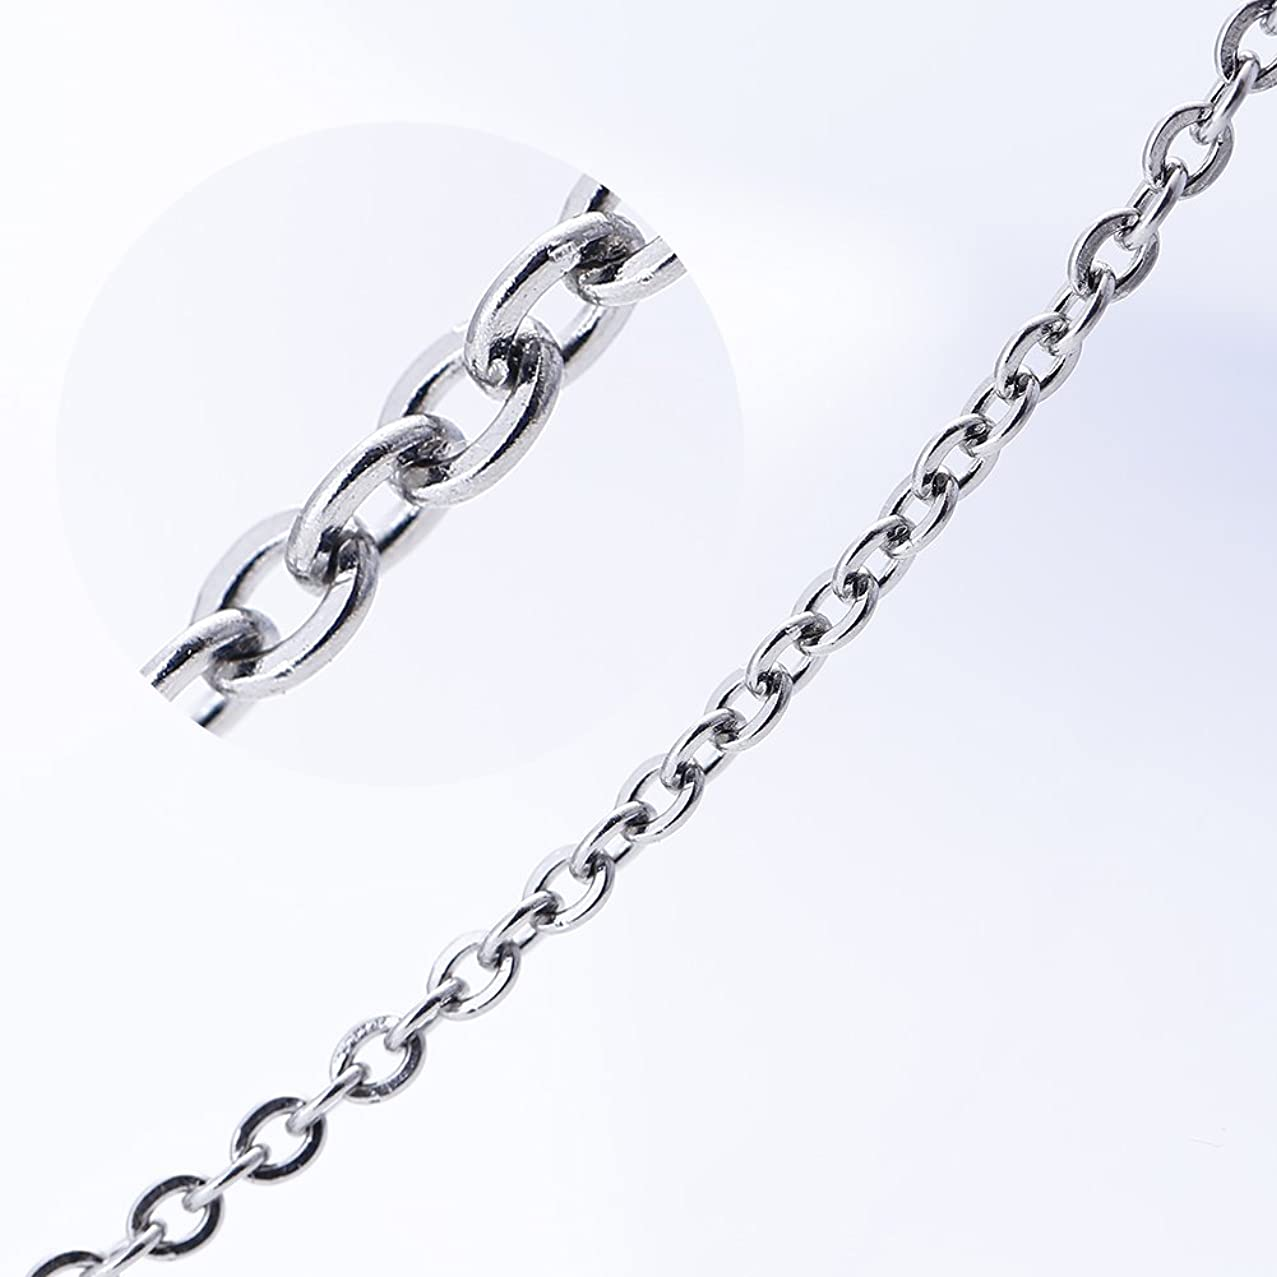 Bingcute 15ft Stainless Steel Cable Chain Link For Necklace Jewelry Making 2.5x3mm